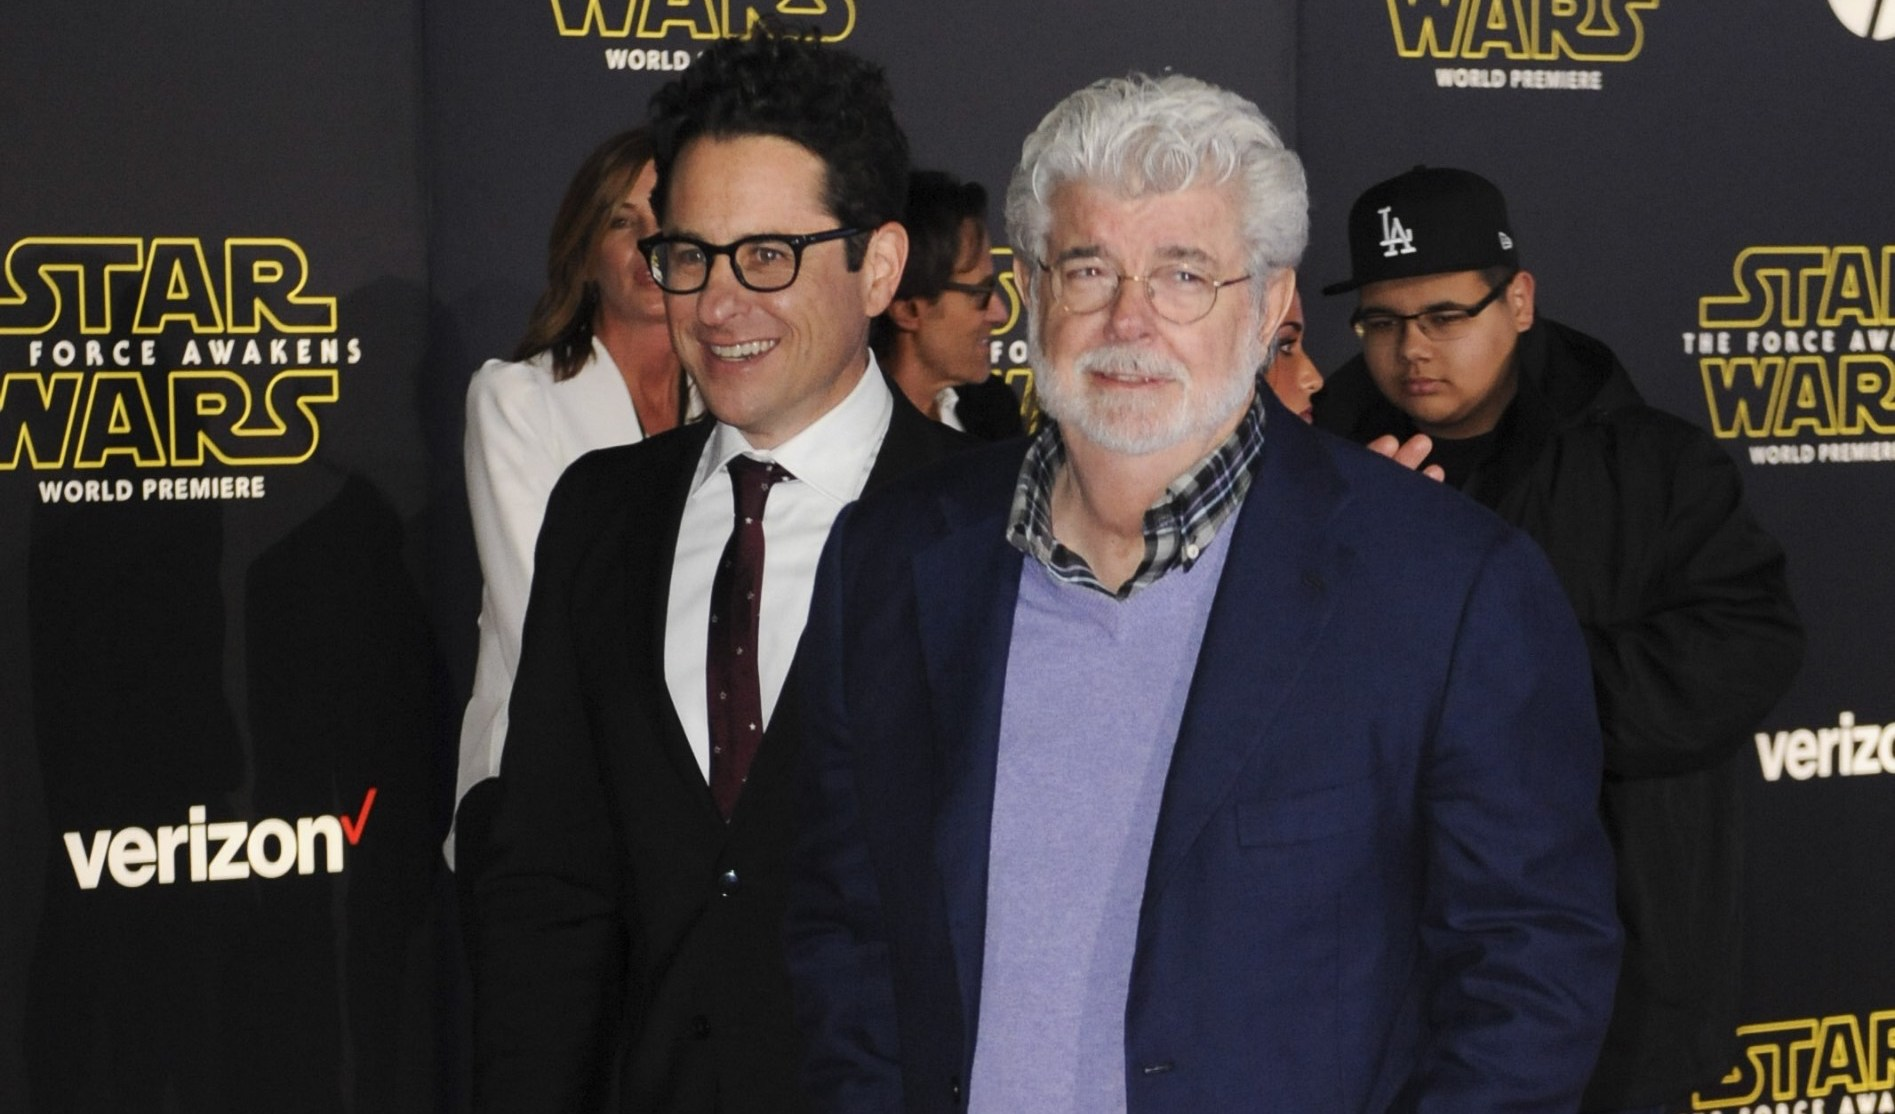 J.J. Abrams and George Lucas